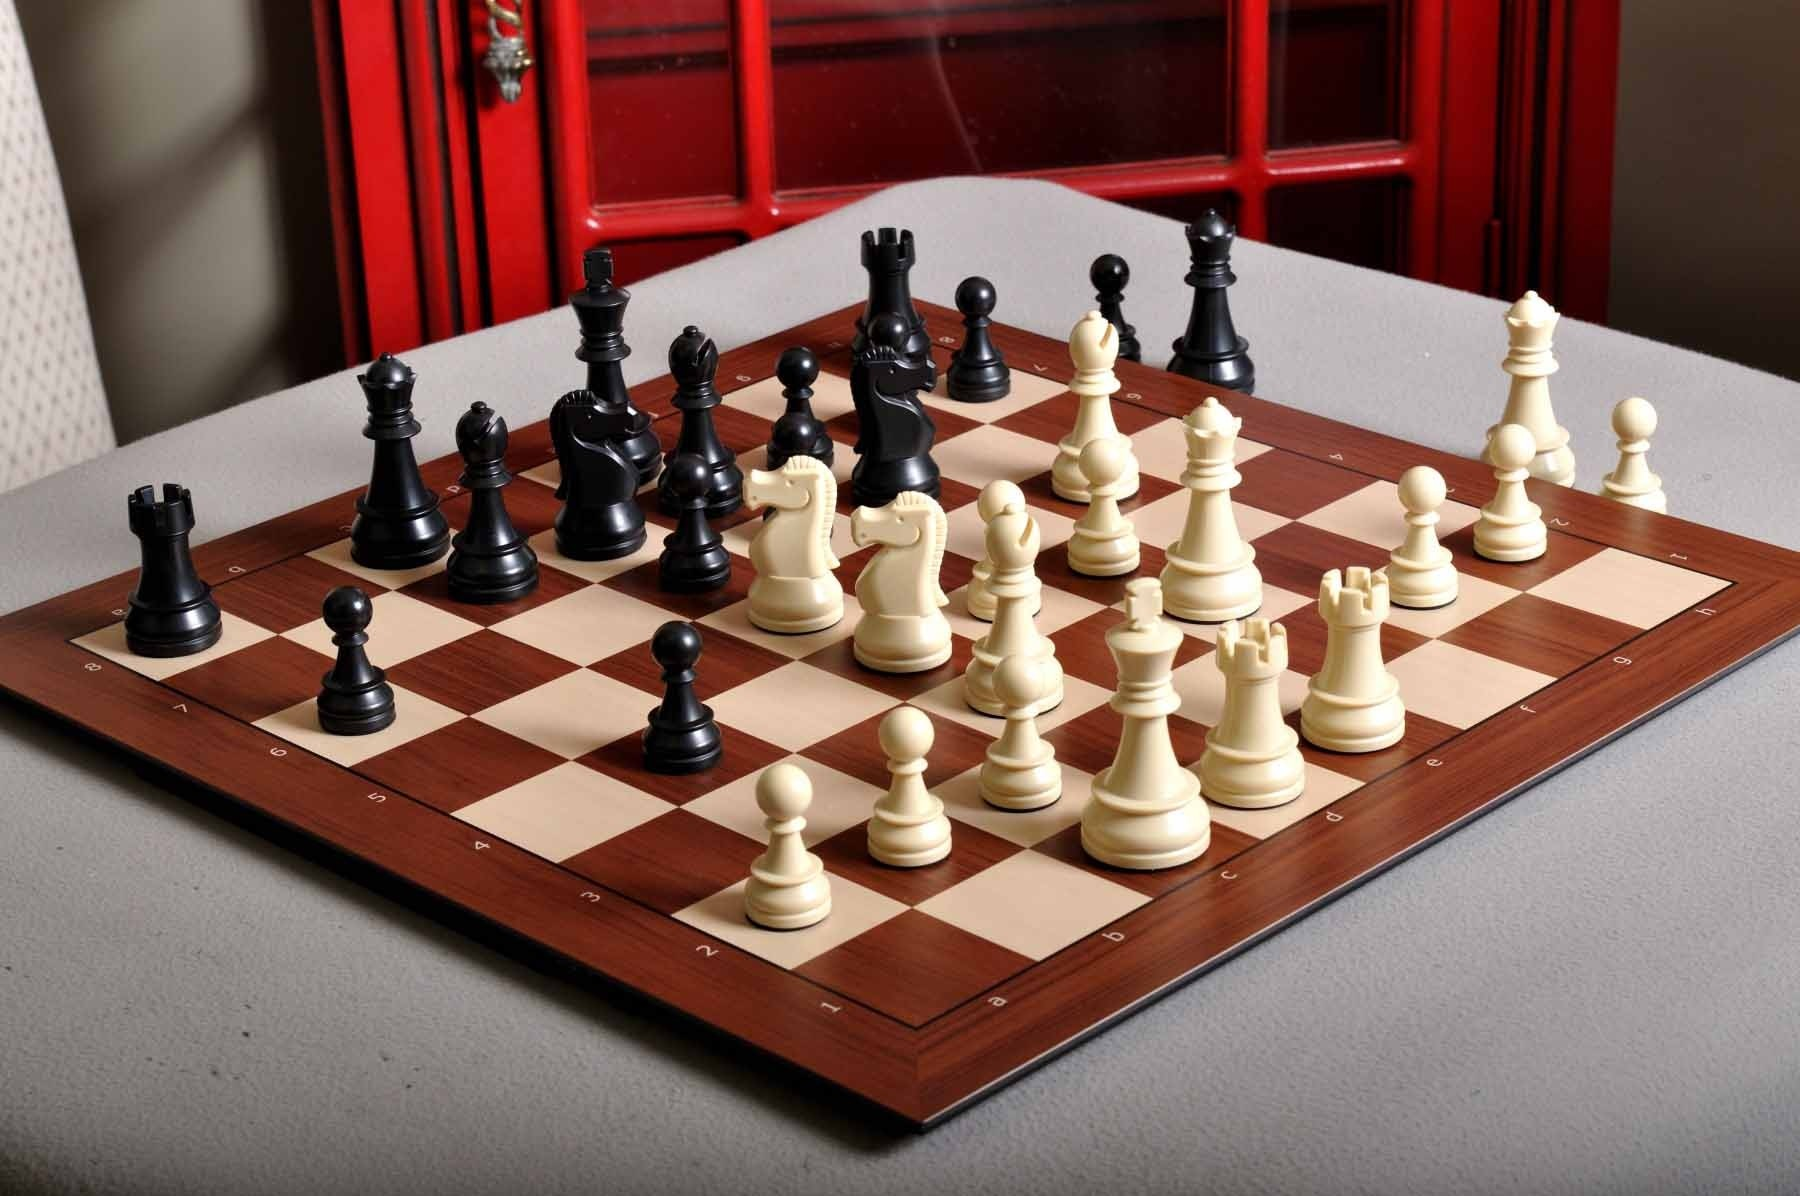 Electronic Plastic Chess Pieces - Designed for DGT Electronic and Smart Chess Boards  House Of